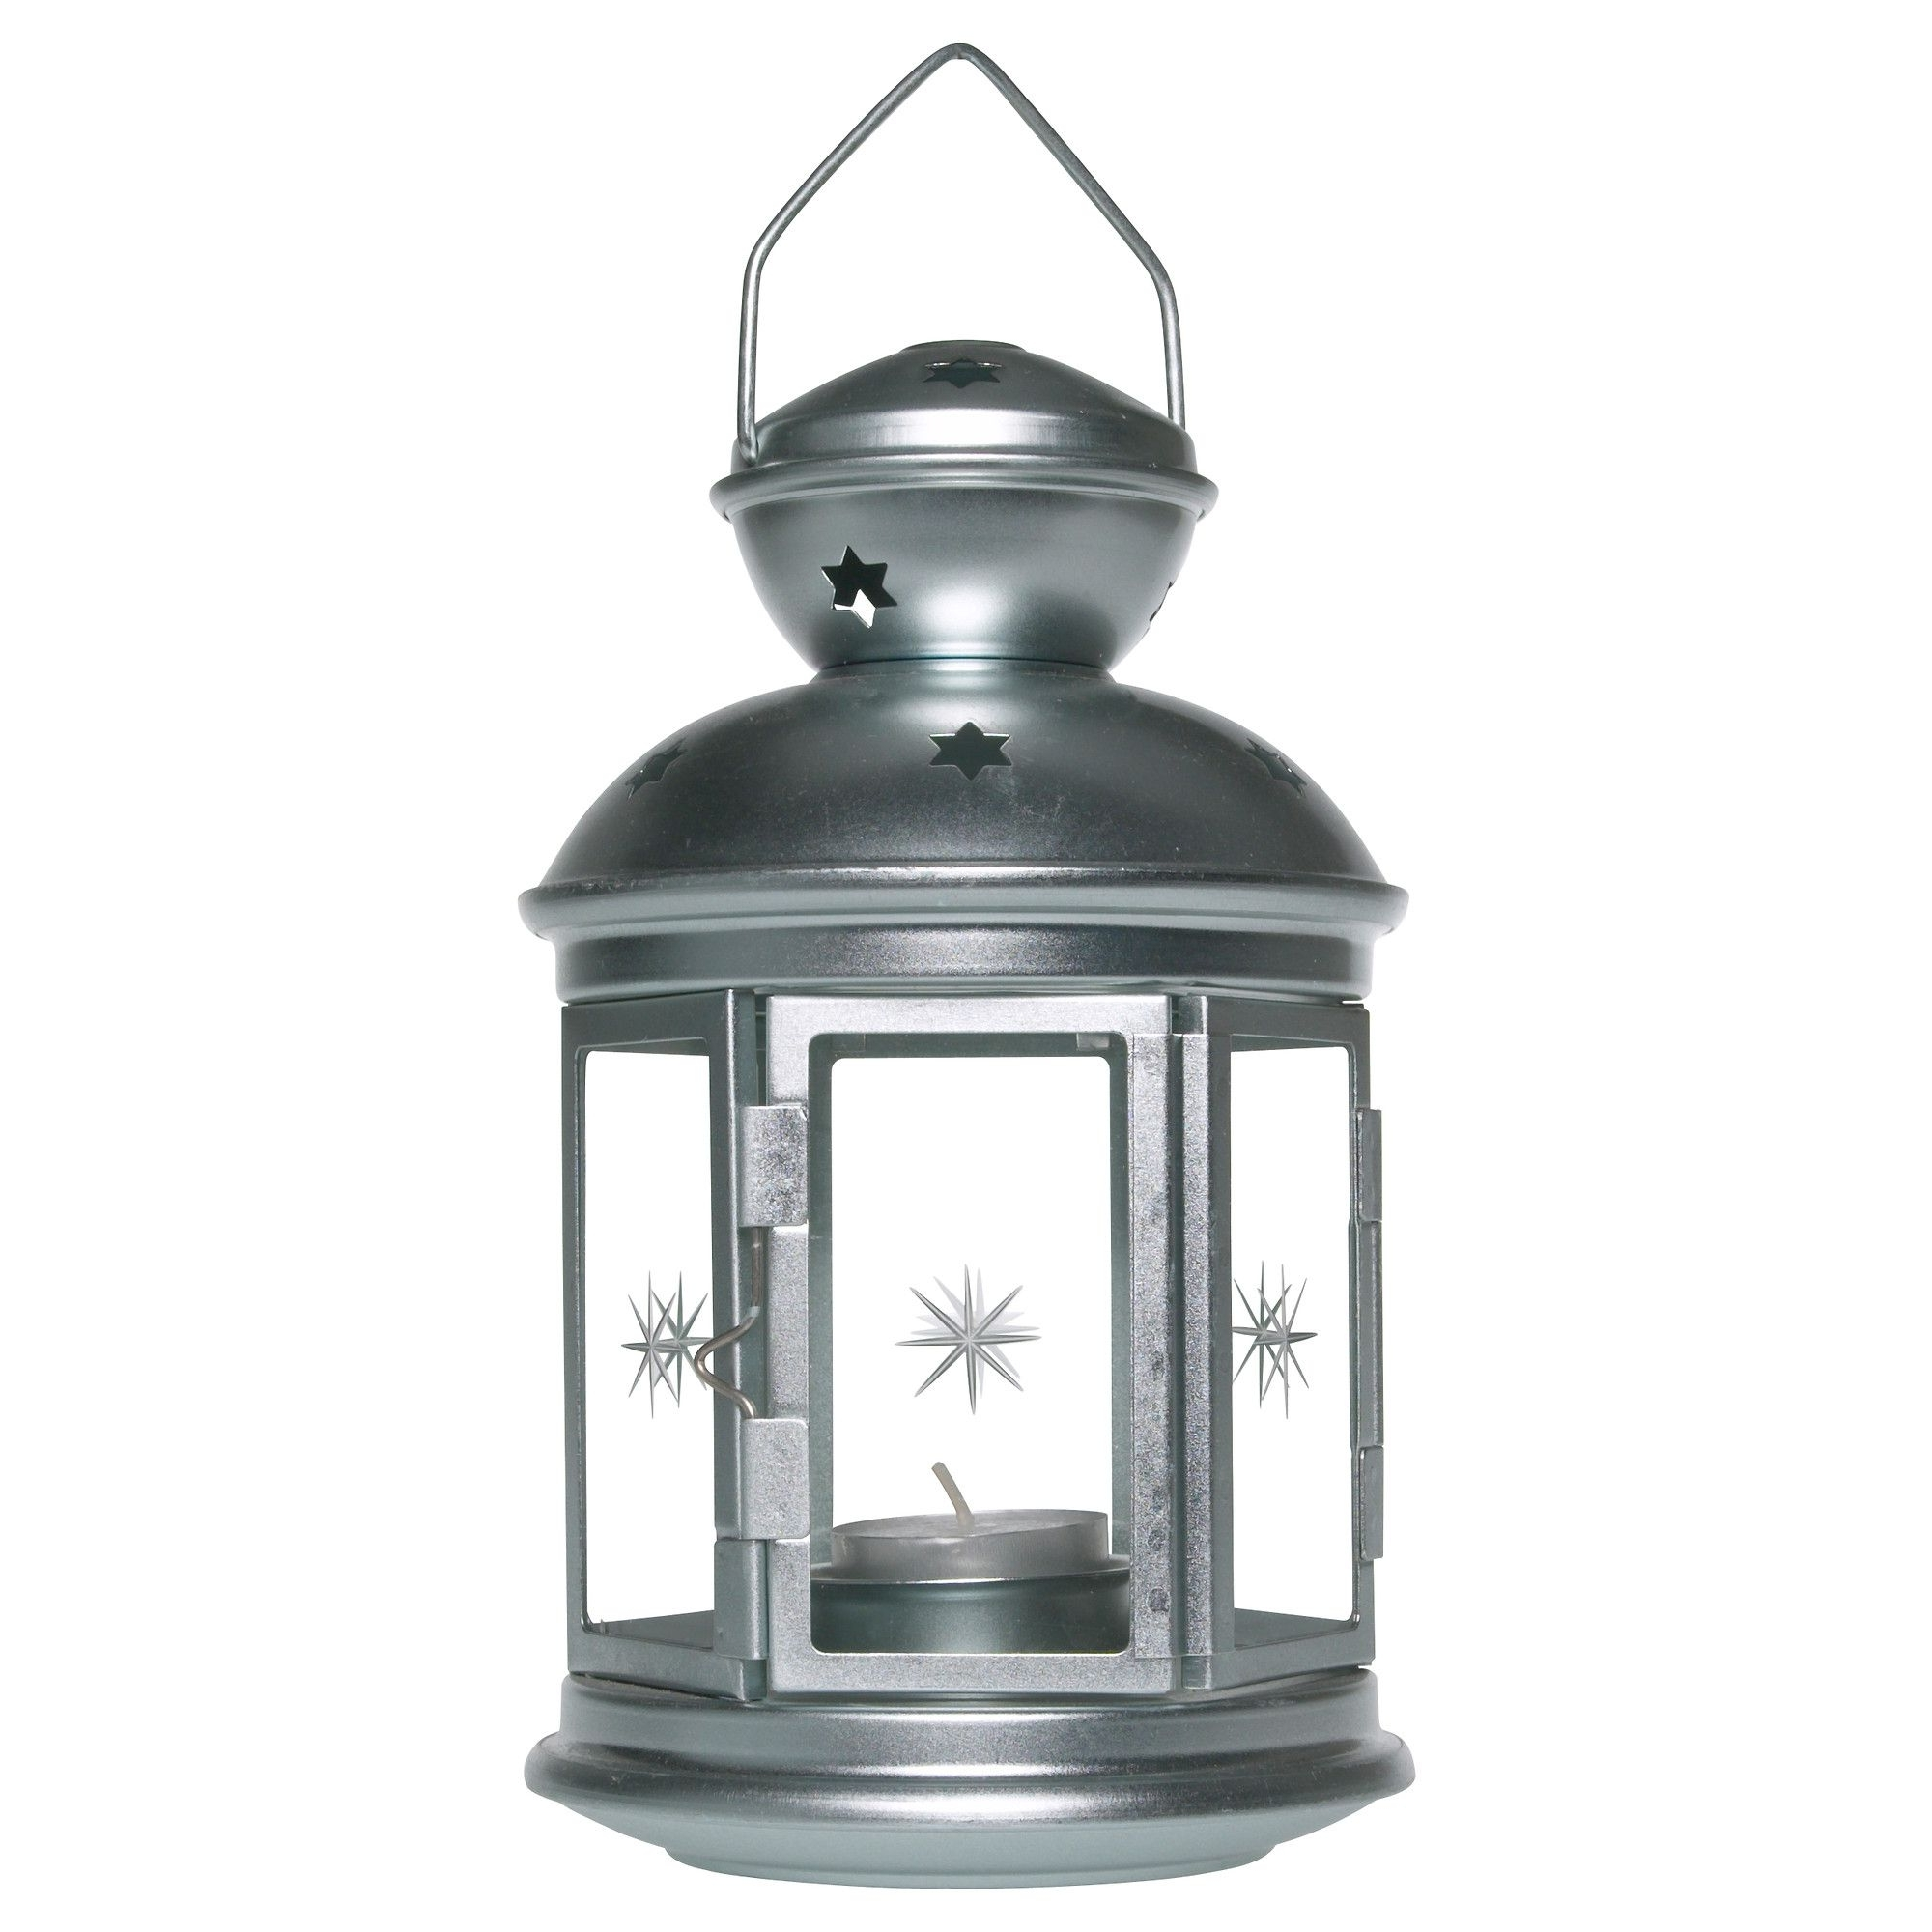 Famous Ikea Outdoor Lanterns Pertaining To Rotera Lantern For Tealight, Galvanized Indoor/outdoor Galvanized (View 4 of 20)